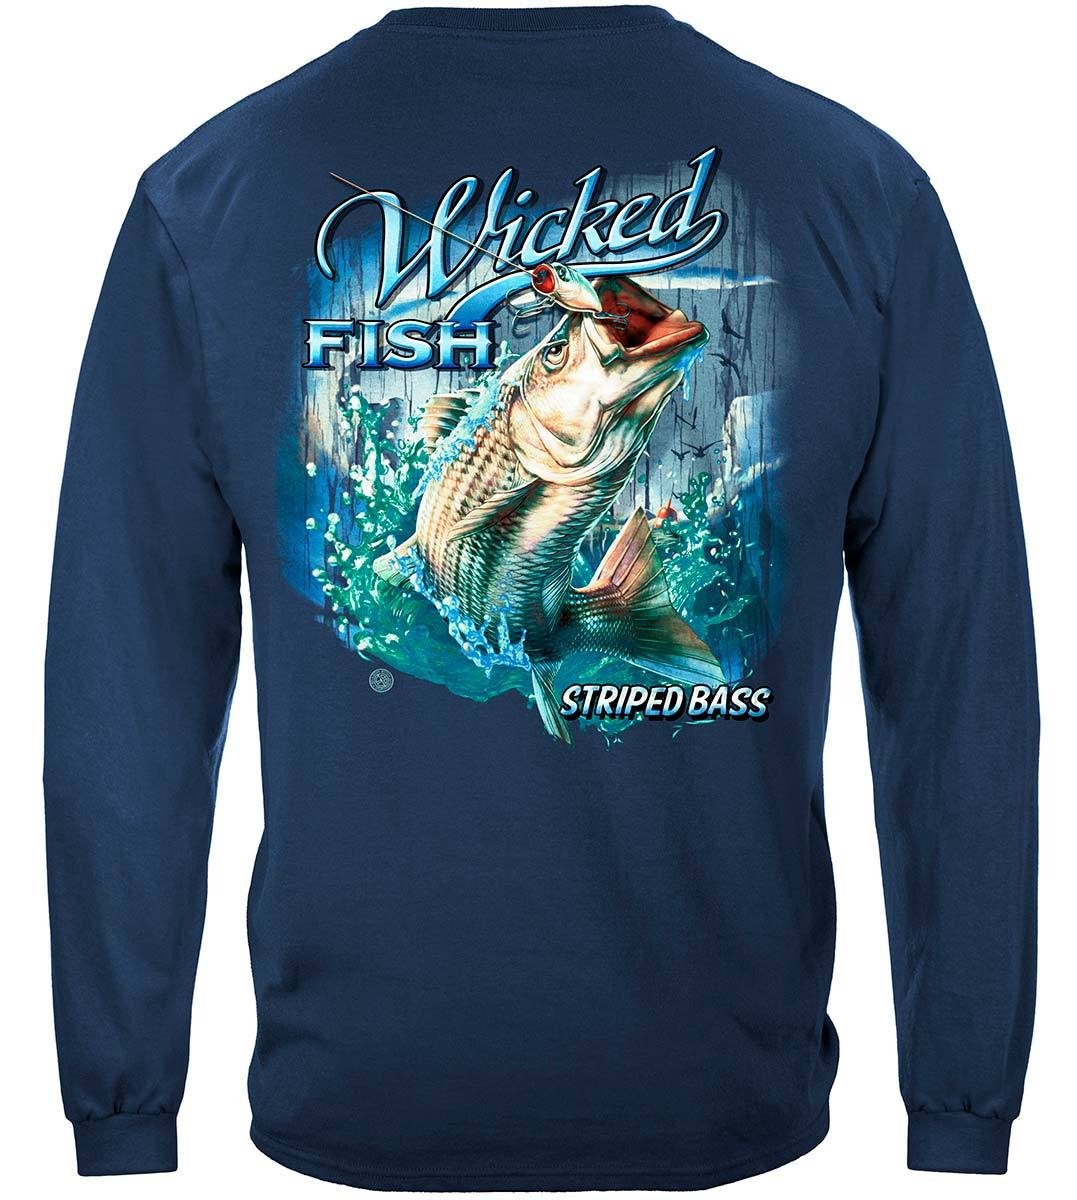 Wicked Fish Striped Bass With Popper Air Born Premium Long Sleeves